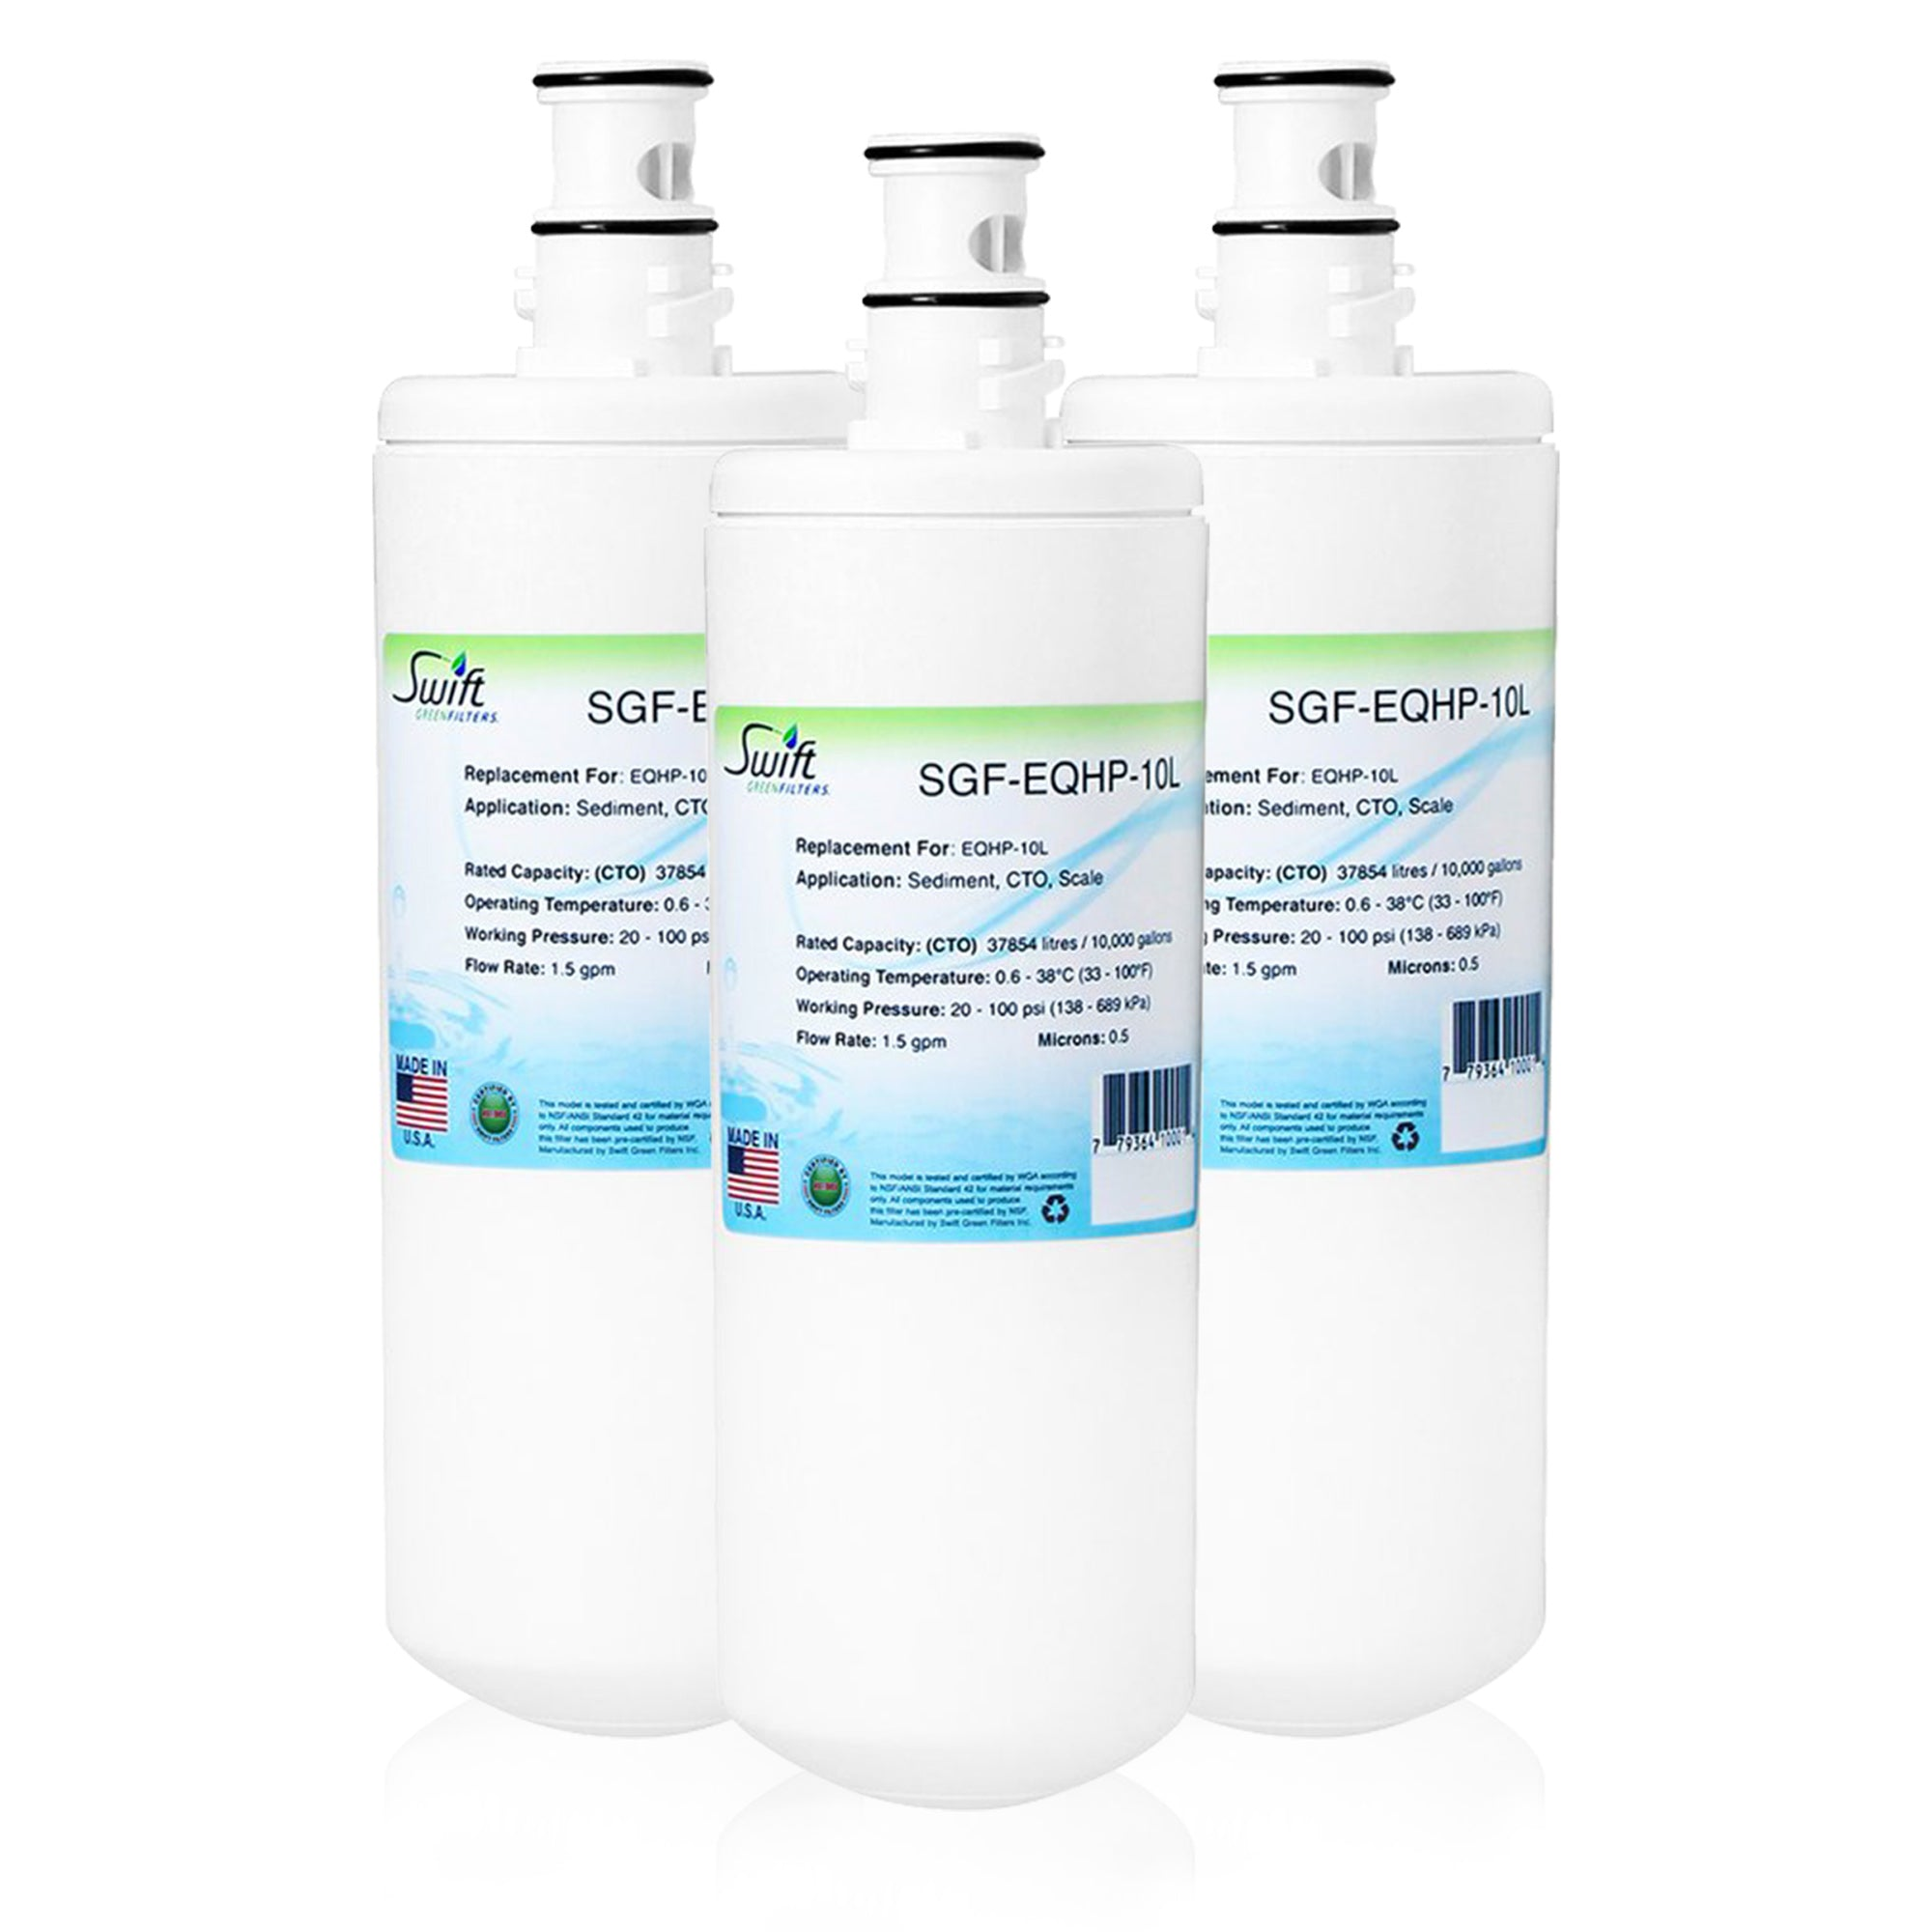 Replacement for Bunn EQHP-10L Water Filter by Swift Green Filters SGF-EQHP-10L